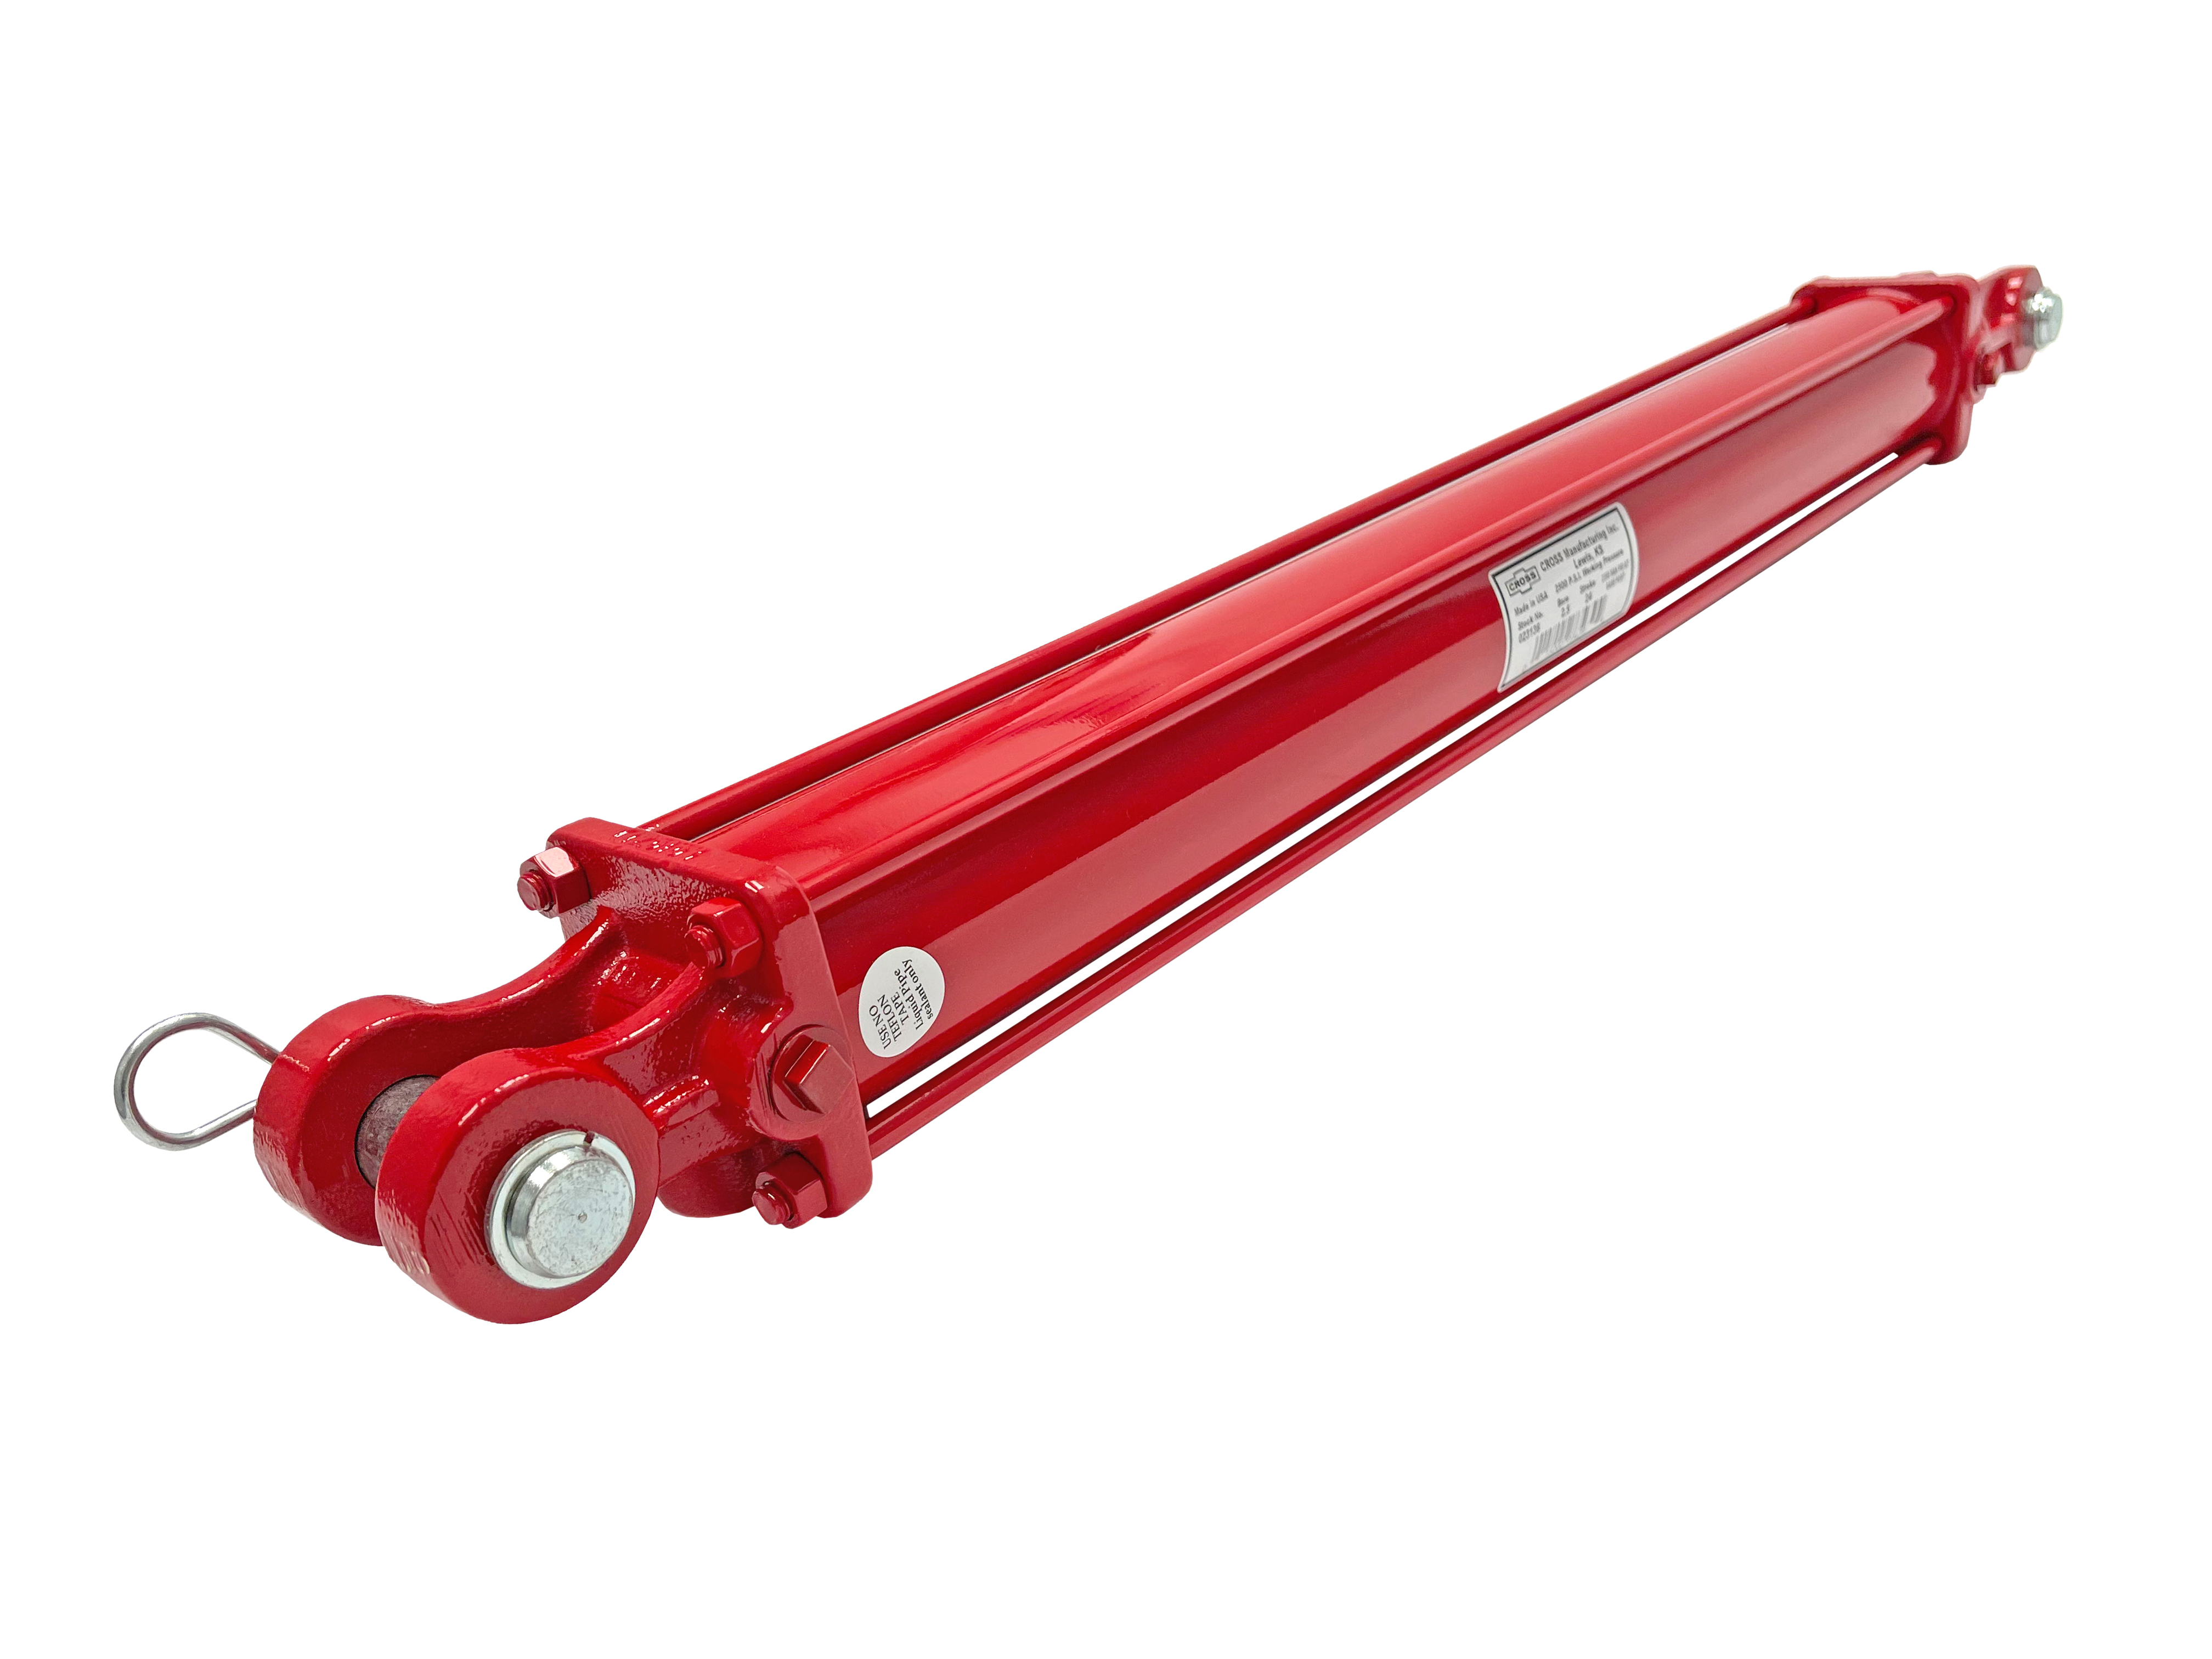 """2.5"""" bore x 30"""" stroke the CROSS series DB tie rod hydraulic cylinder 2500 PSI made in the United States. Heavy-duty hydraulic equipment, 1-year warranty, free ground Continental US shipping. CROSS Manufacturing cylinders manufactured with high quality raw materials and american labor. Precision finished ST52.3 steel cylinder barrels and polished induction hardened C1045 stell alloy rods, quality seals provide a long life for CROSS hydraulic cylinders. Ductile iron screw on clevis and double ported base for easy connection. High tensile strength tie rods with rolled threads for durability. Piston produced by gray iron or aluminum alloy with 70 durometer Buna N piston o-rings with polyurethane back-ups, double lipped u-cup rod seals. NPTF ports in line with pins. Excellent replacement for farming equipment and others. Made in the USA."""